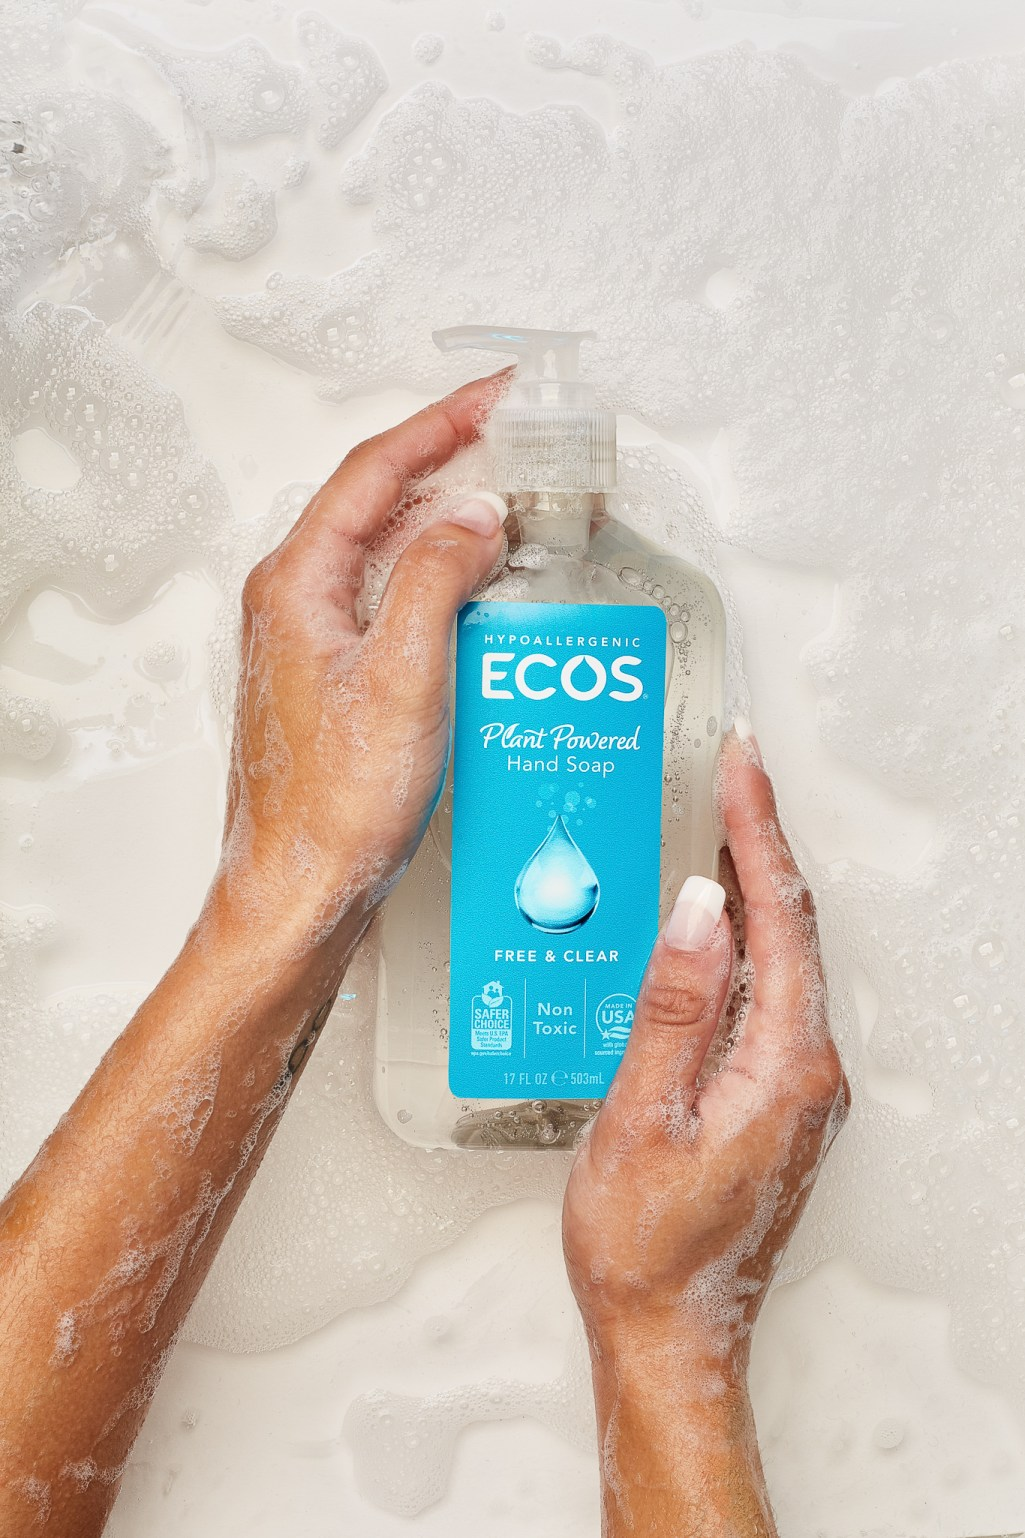 Still life product photo of hand soap in soapy water with manicured hand. Photographer Ella Sophie